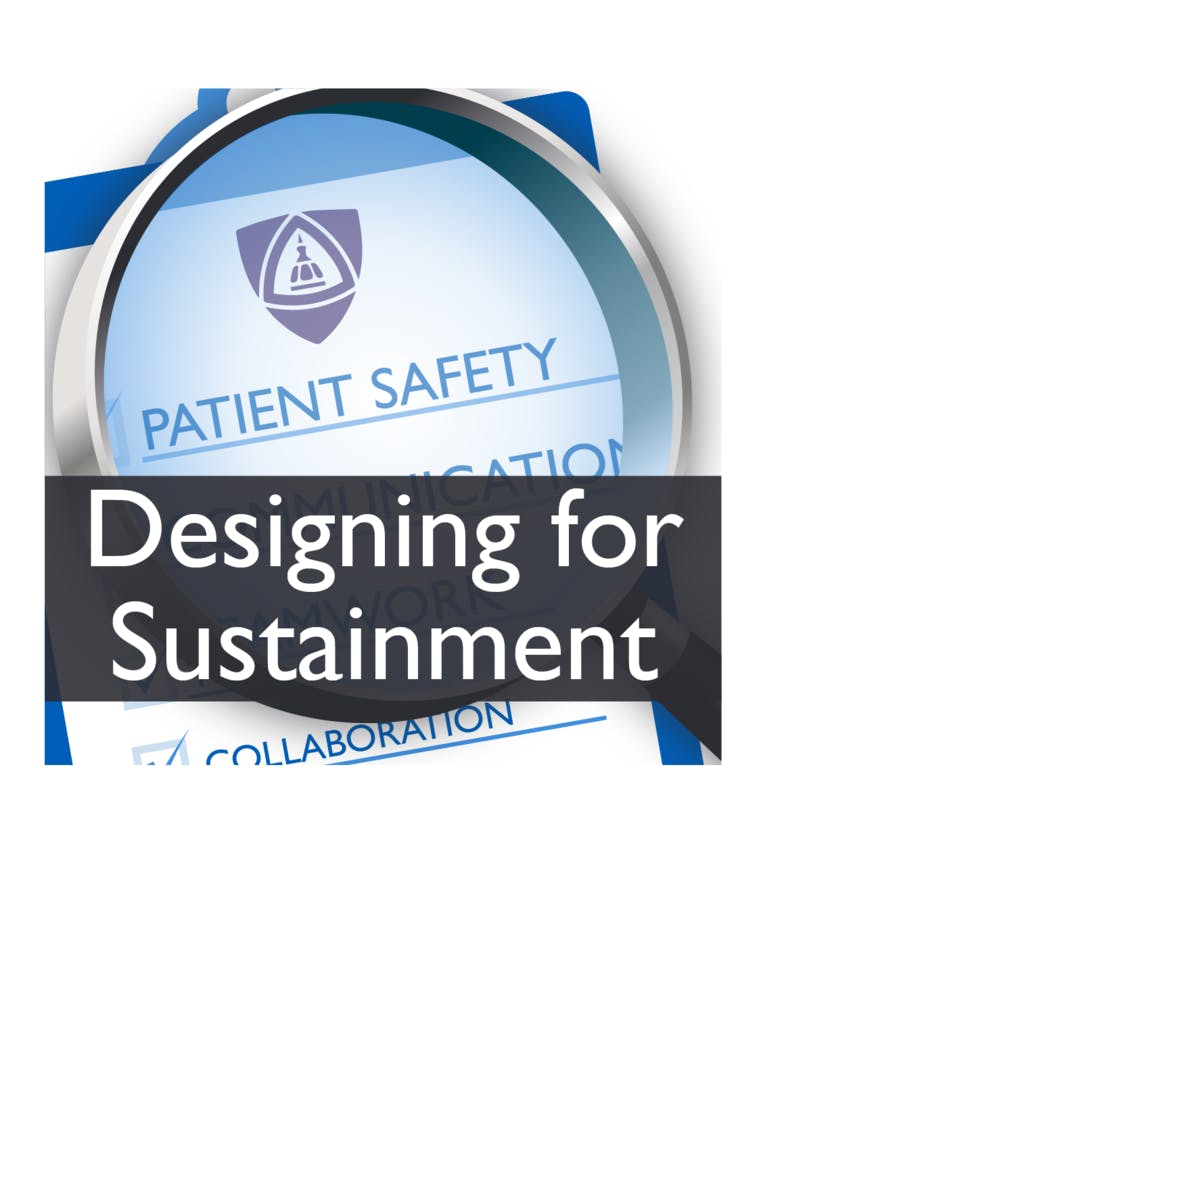 Designing for Sustainment: Keeping Improvement Work on Track (Patient Safety IV)